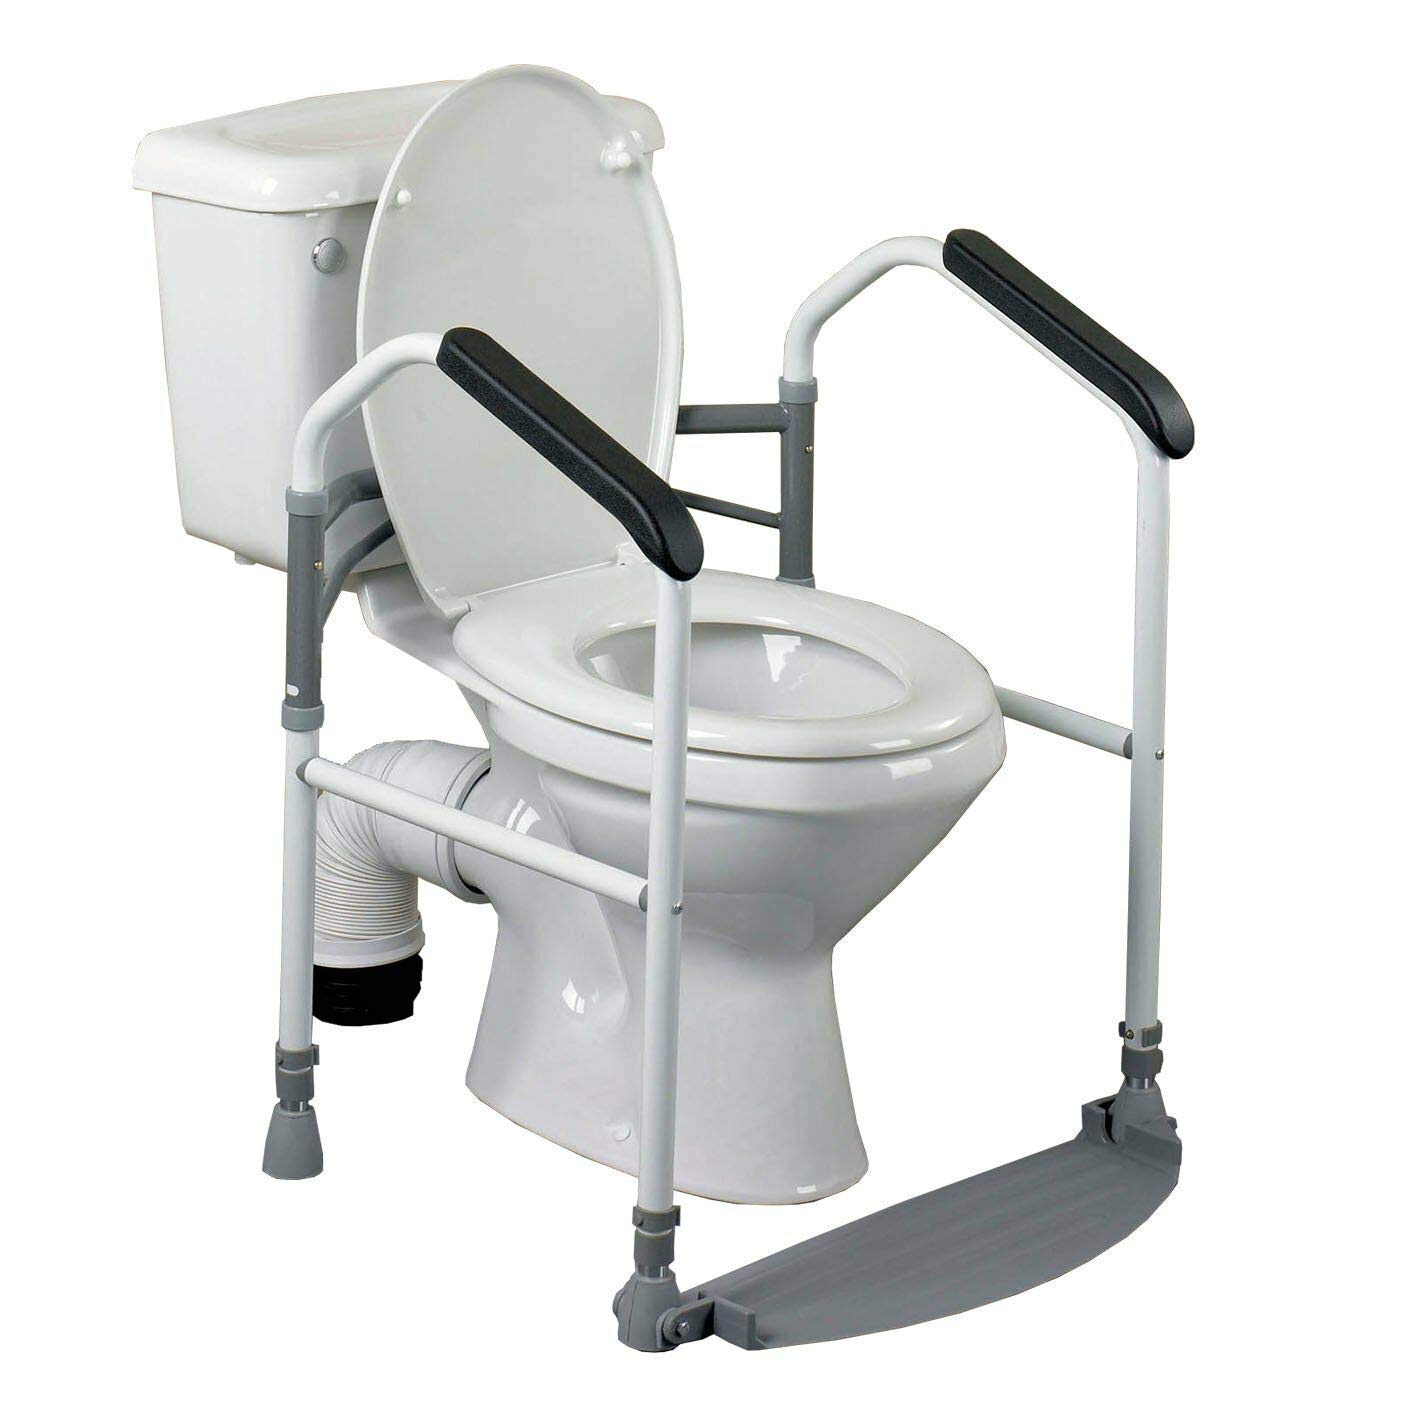 Homecraft Buckingham Foldaway Toilet Surround, Padded Toilet Grab Bars, Bathroom Handrail with Adjustable Height, standard Alone Device, Toilet Safety Frame for Eldery, Handicapped, and Disabled Aid: Industrial & Scientific